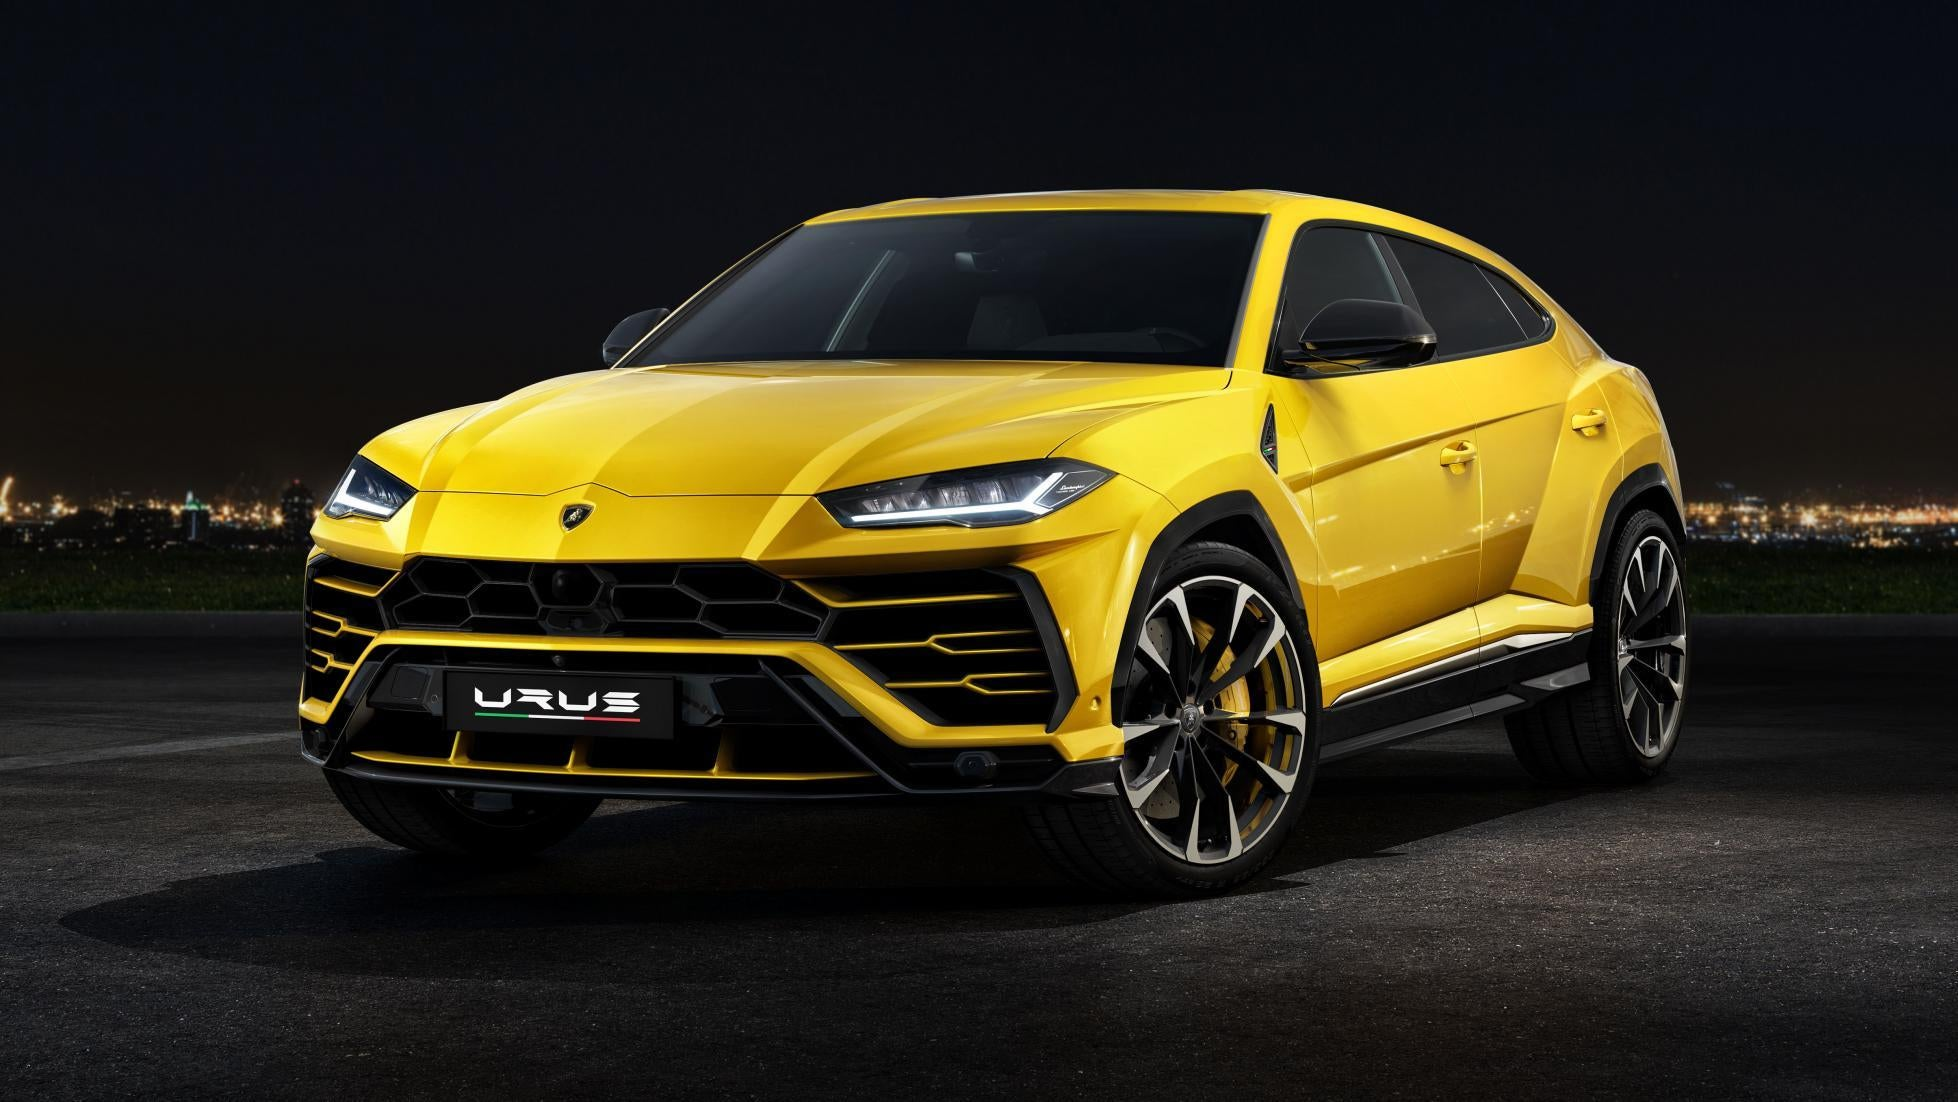 the lamborghini urus sounds like a supercar shouldillustration for article titled the lamborghini urus sounds like a supercar should